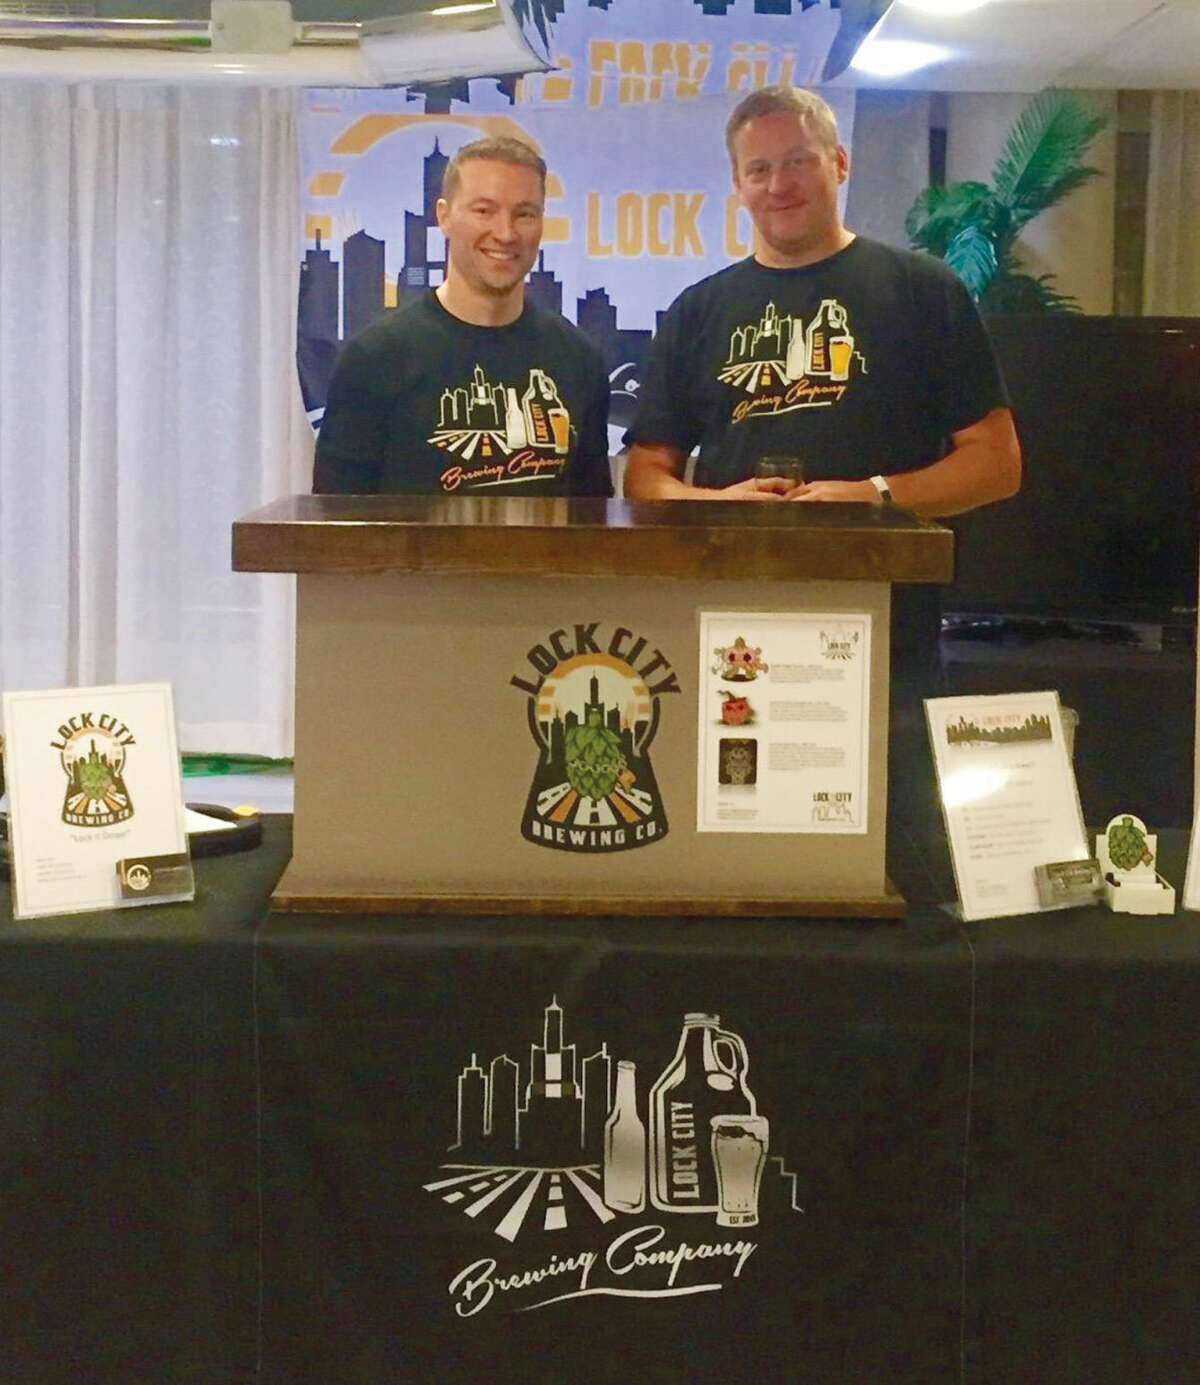 Michael Bushnell and Patrick Casciolo will open Lock City Brewing on Research Drive in Stamford.